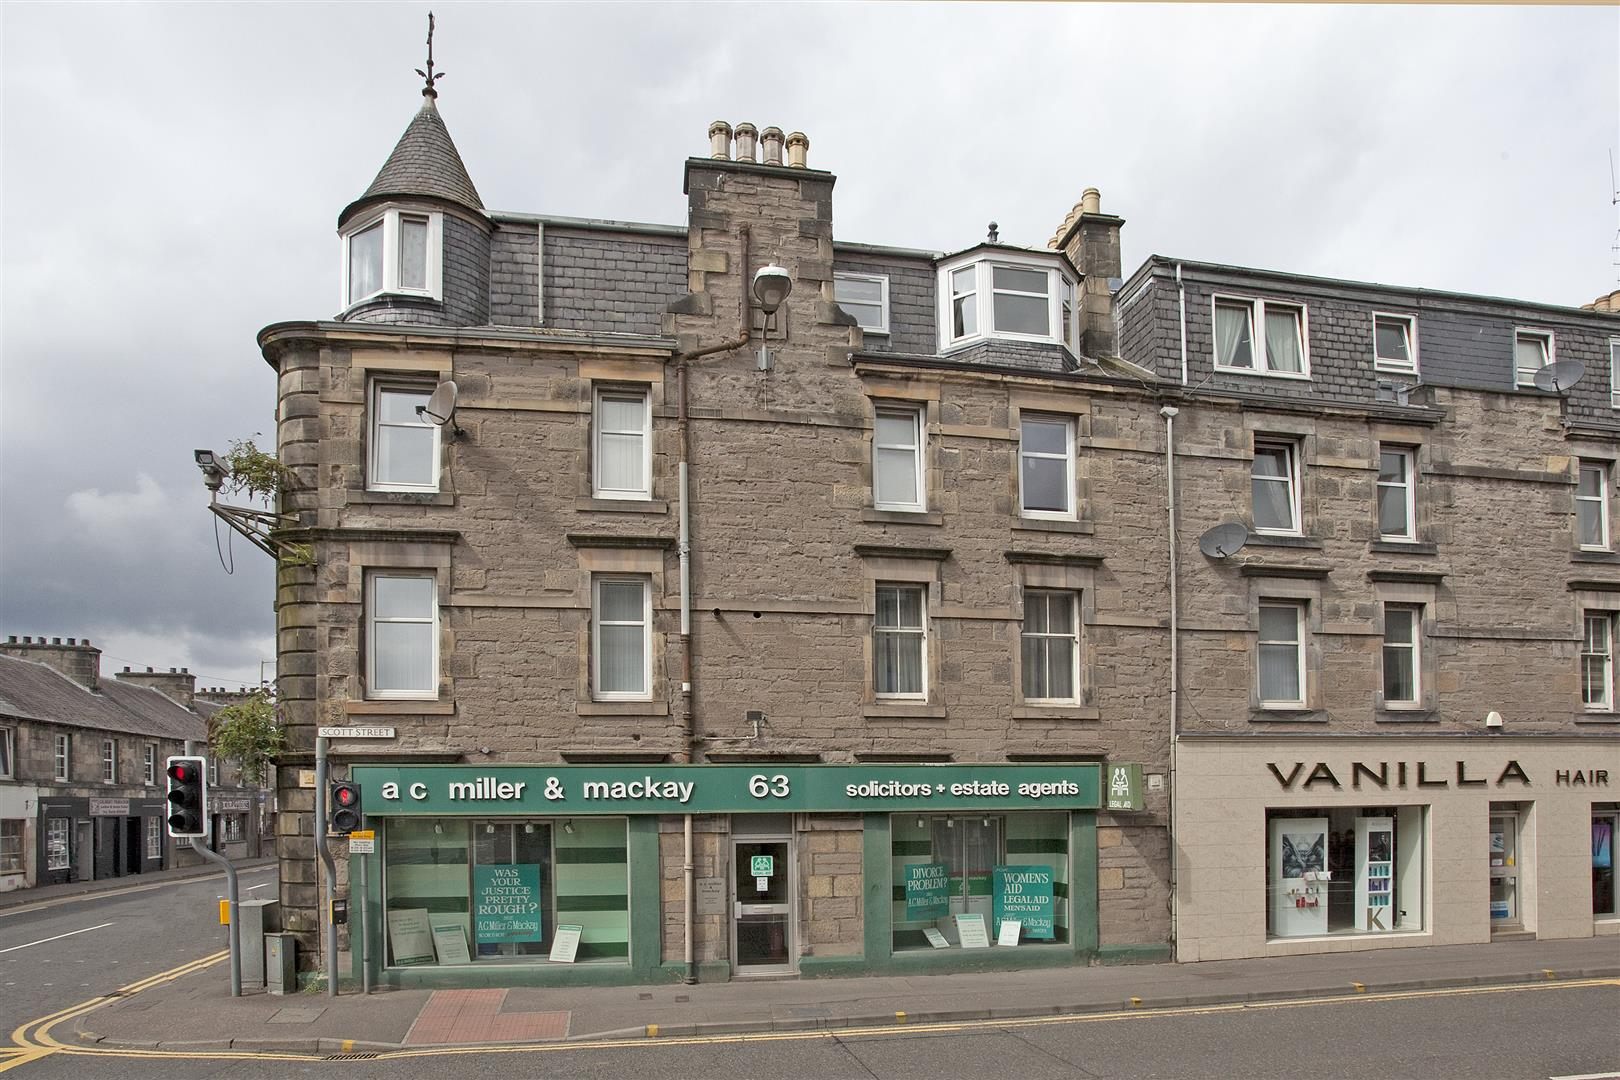 A2, 89, Canal Street, Perth, Perthshire, PH2 8HX, UK